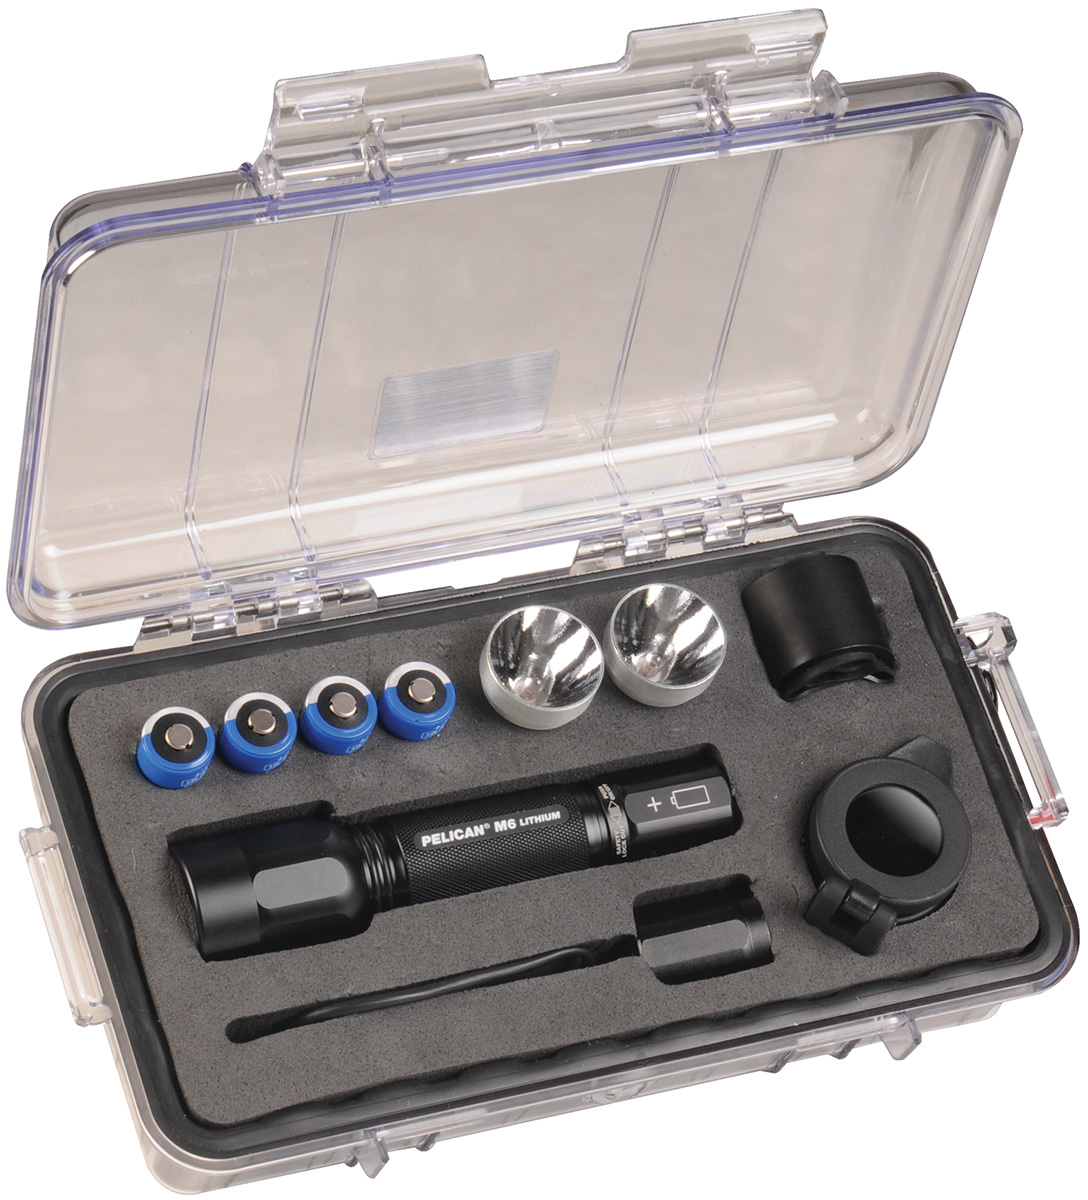 pelican peli products 1060 strong flashlight hard protective case